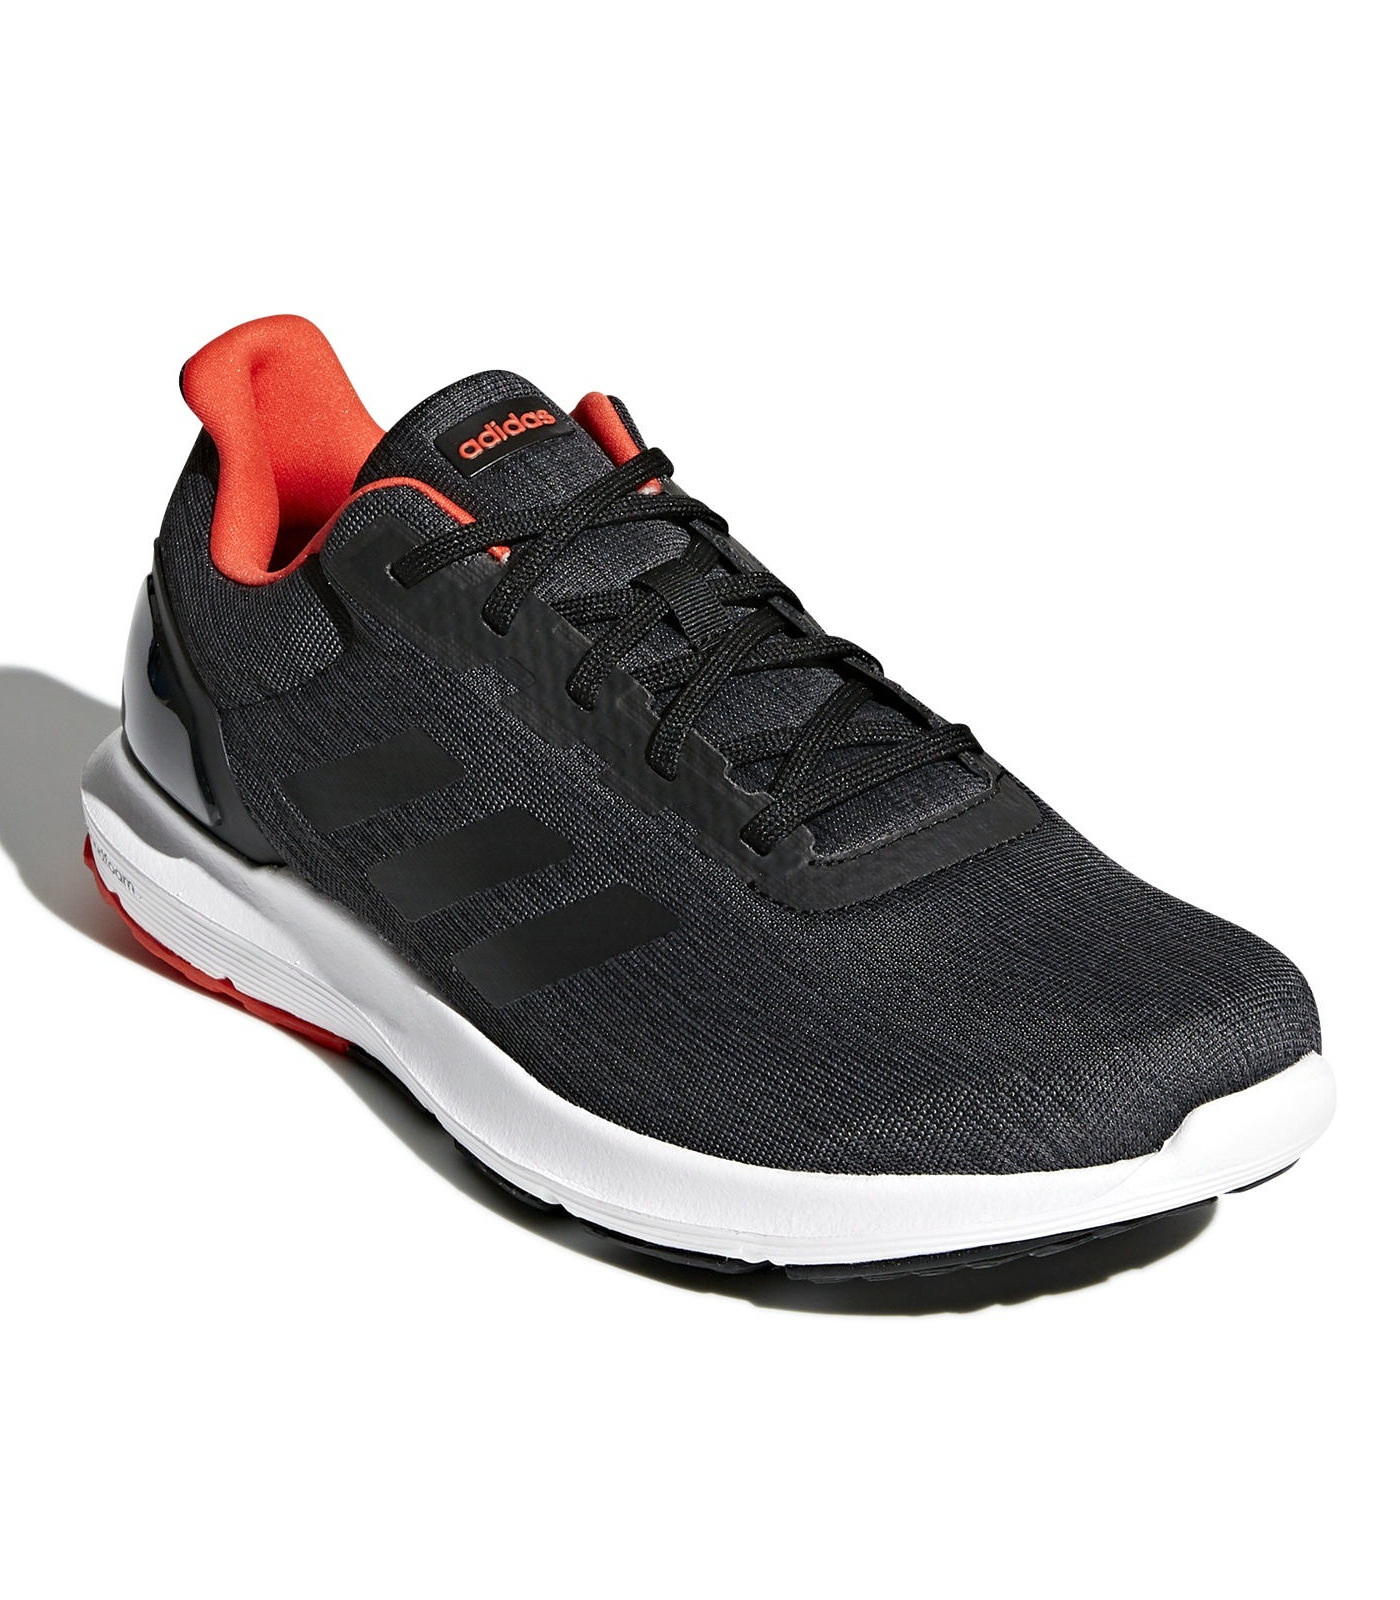 best sneakers a0a5e 21c98 Adidas Scarpe Corsa Running Shoes Sneakers Trainers cosmic 2M Nero Uomo 7 7  di 8 ...